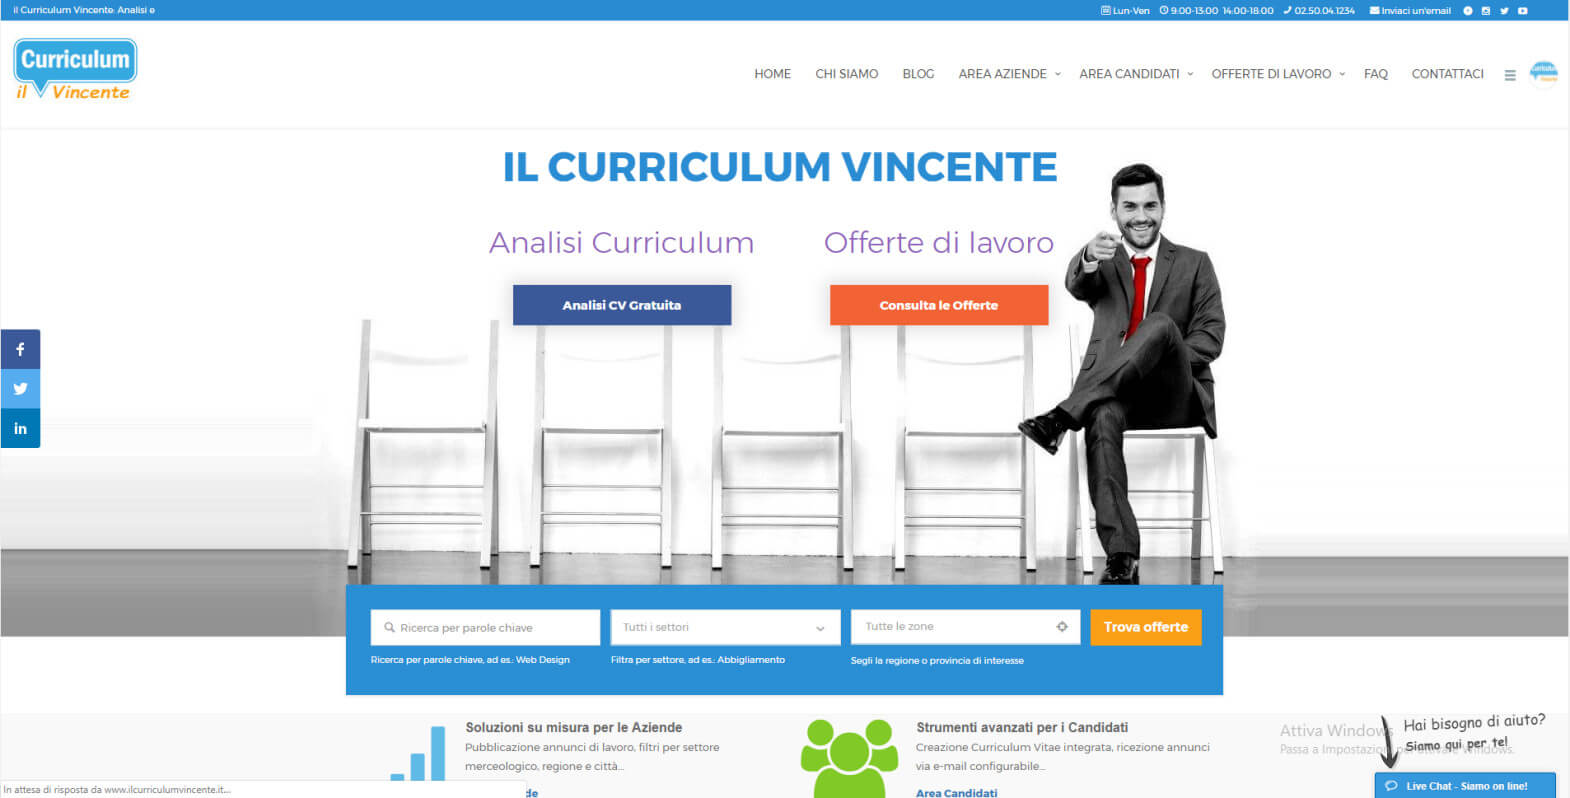 Il Curriculum Vincente